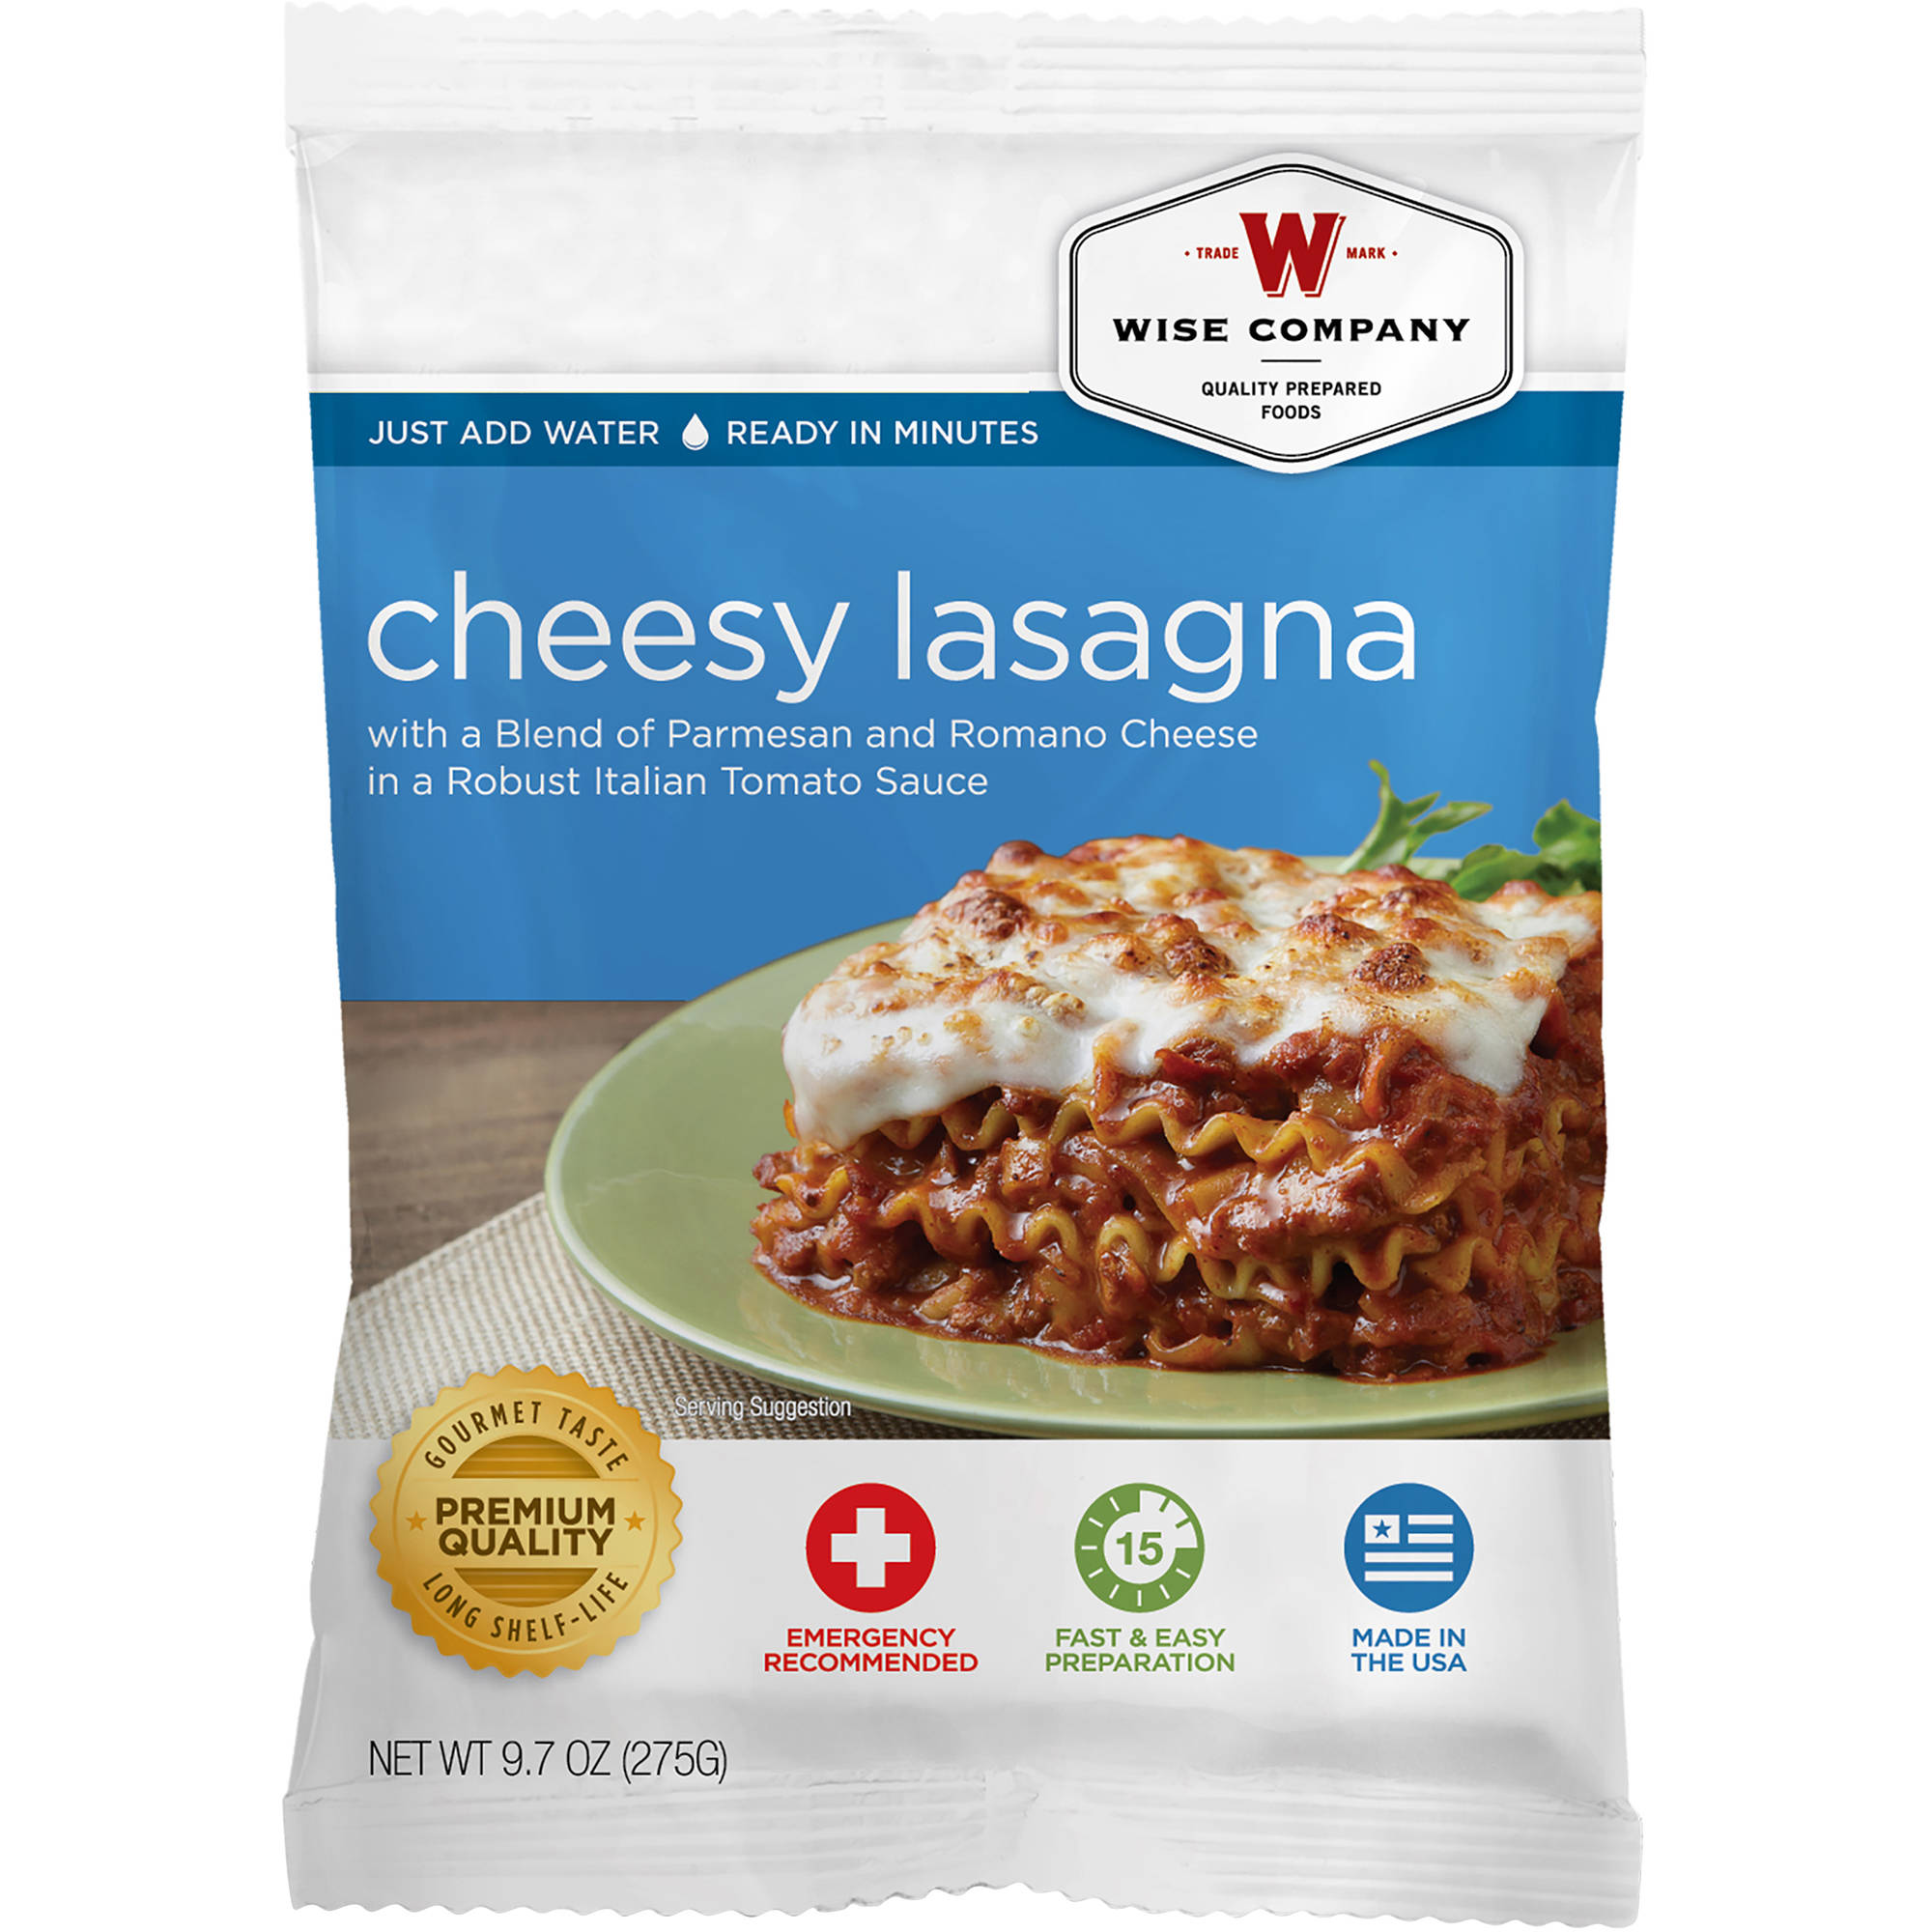 Wise Company Cheesy Lasagna, 9.7 oz